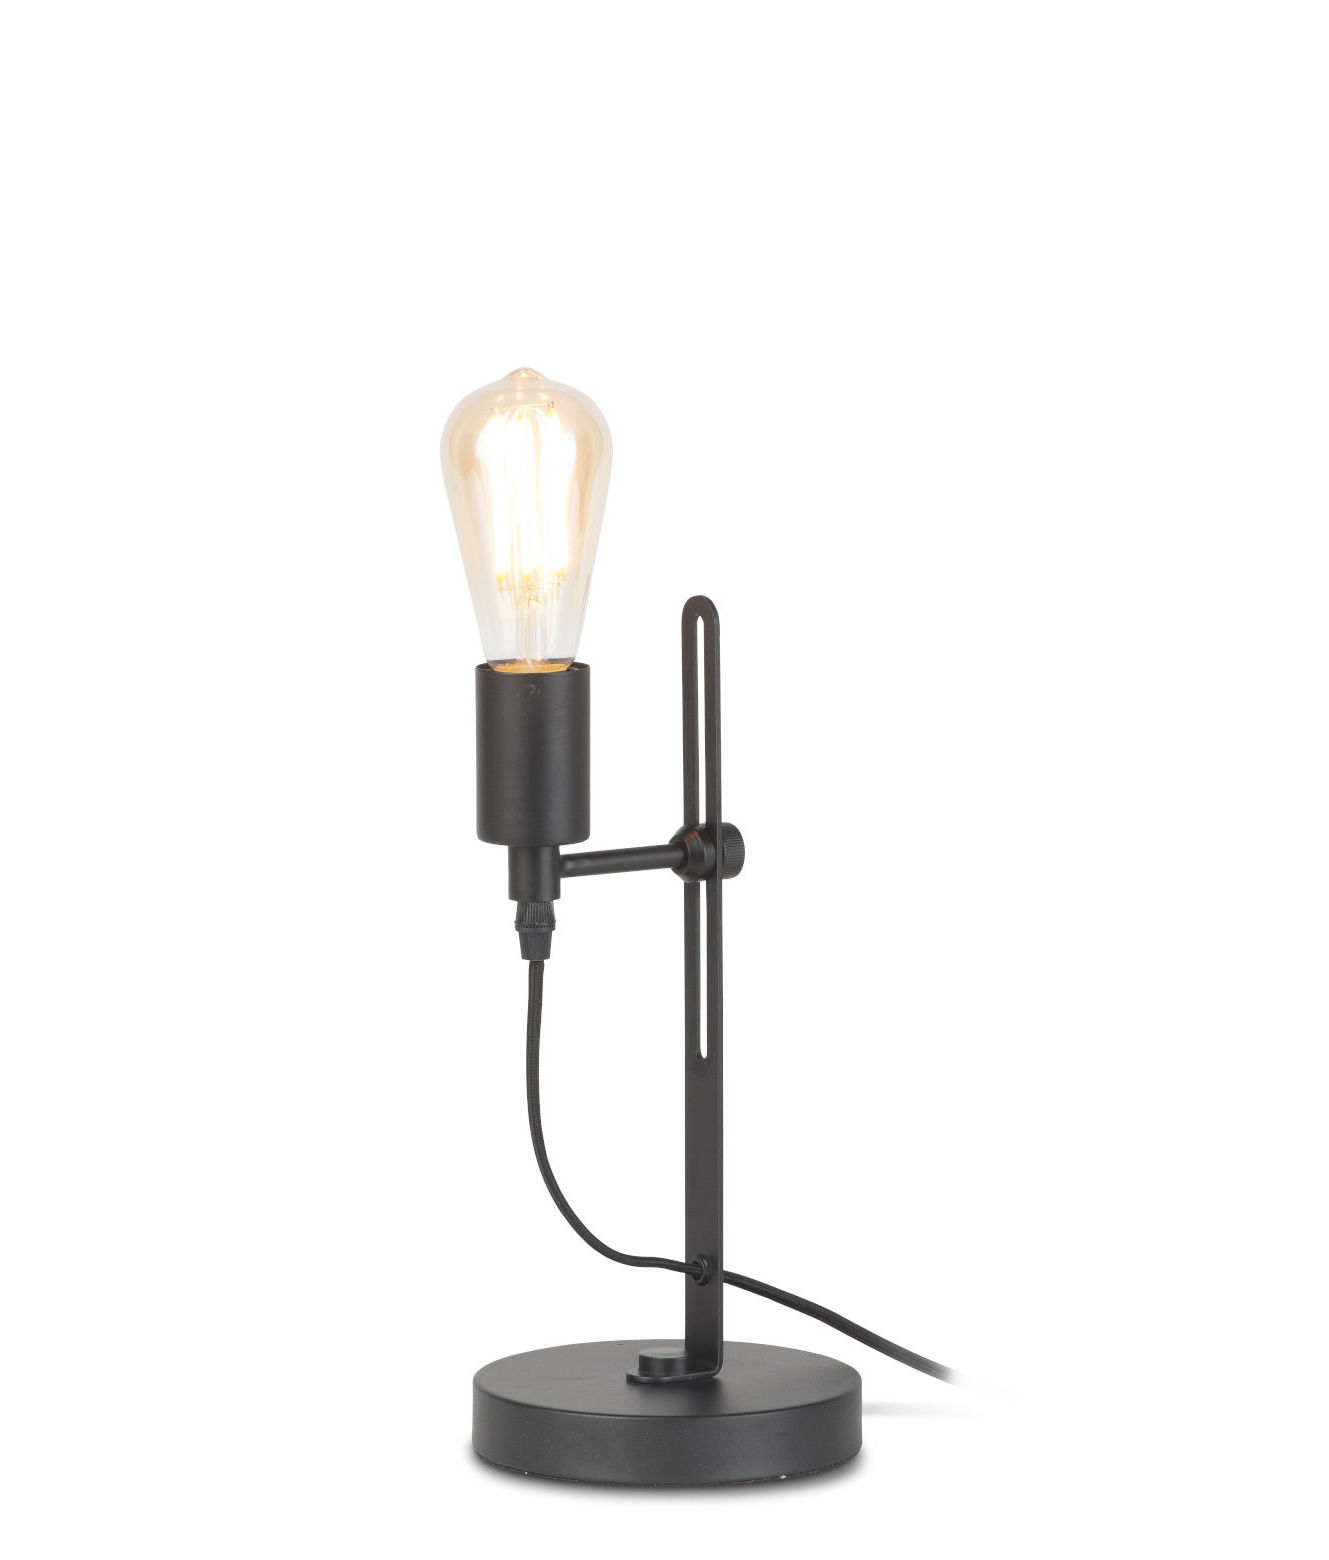 Lighting - Table Lamps - Seattle Table lamp - / Adjustable height by It's about Romi - Black - Iron